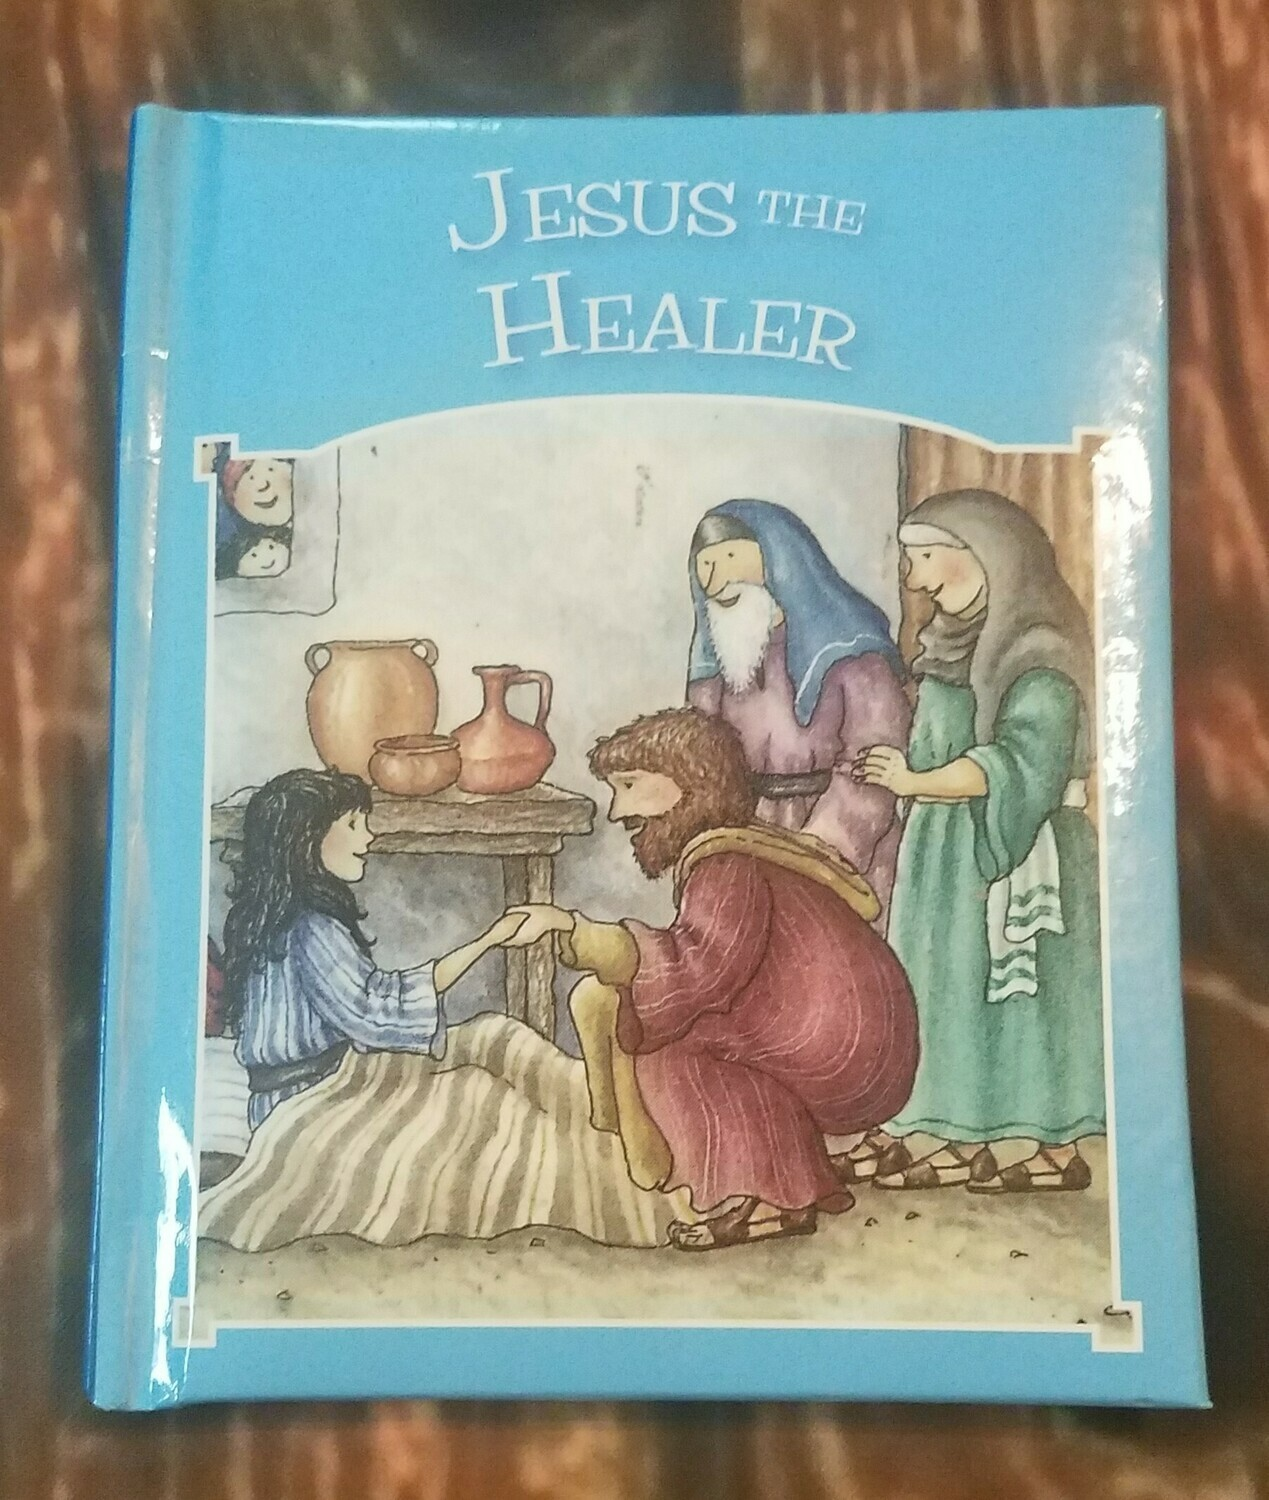 Jesus the Healer by Tim and Jenny Wood